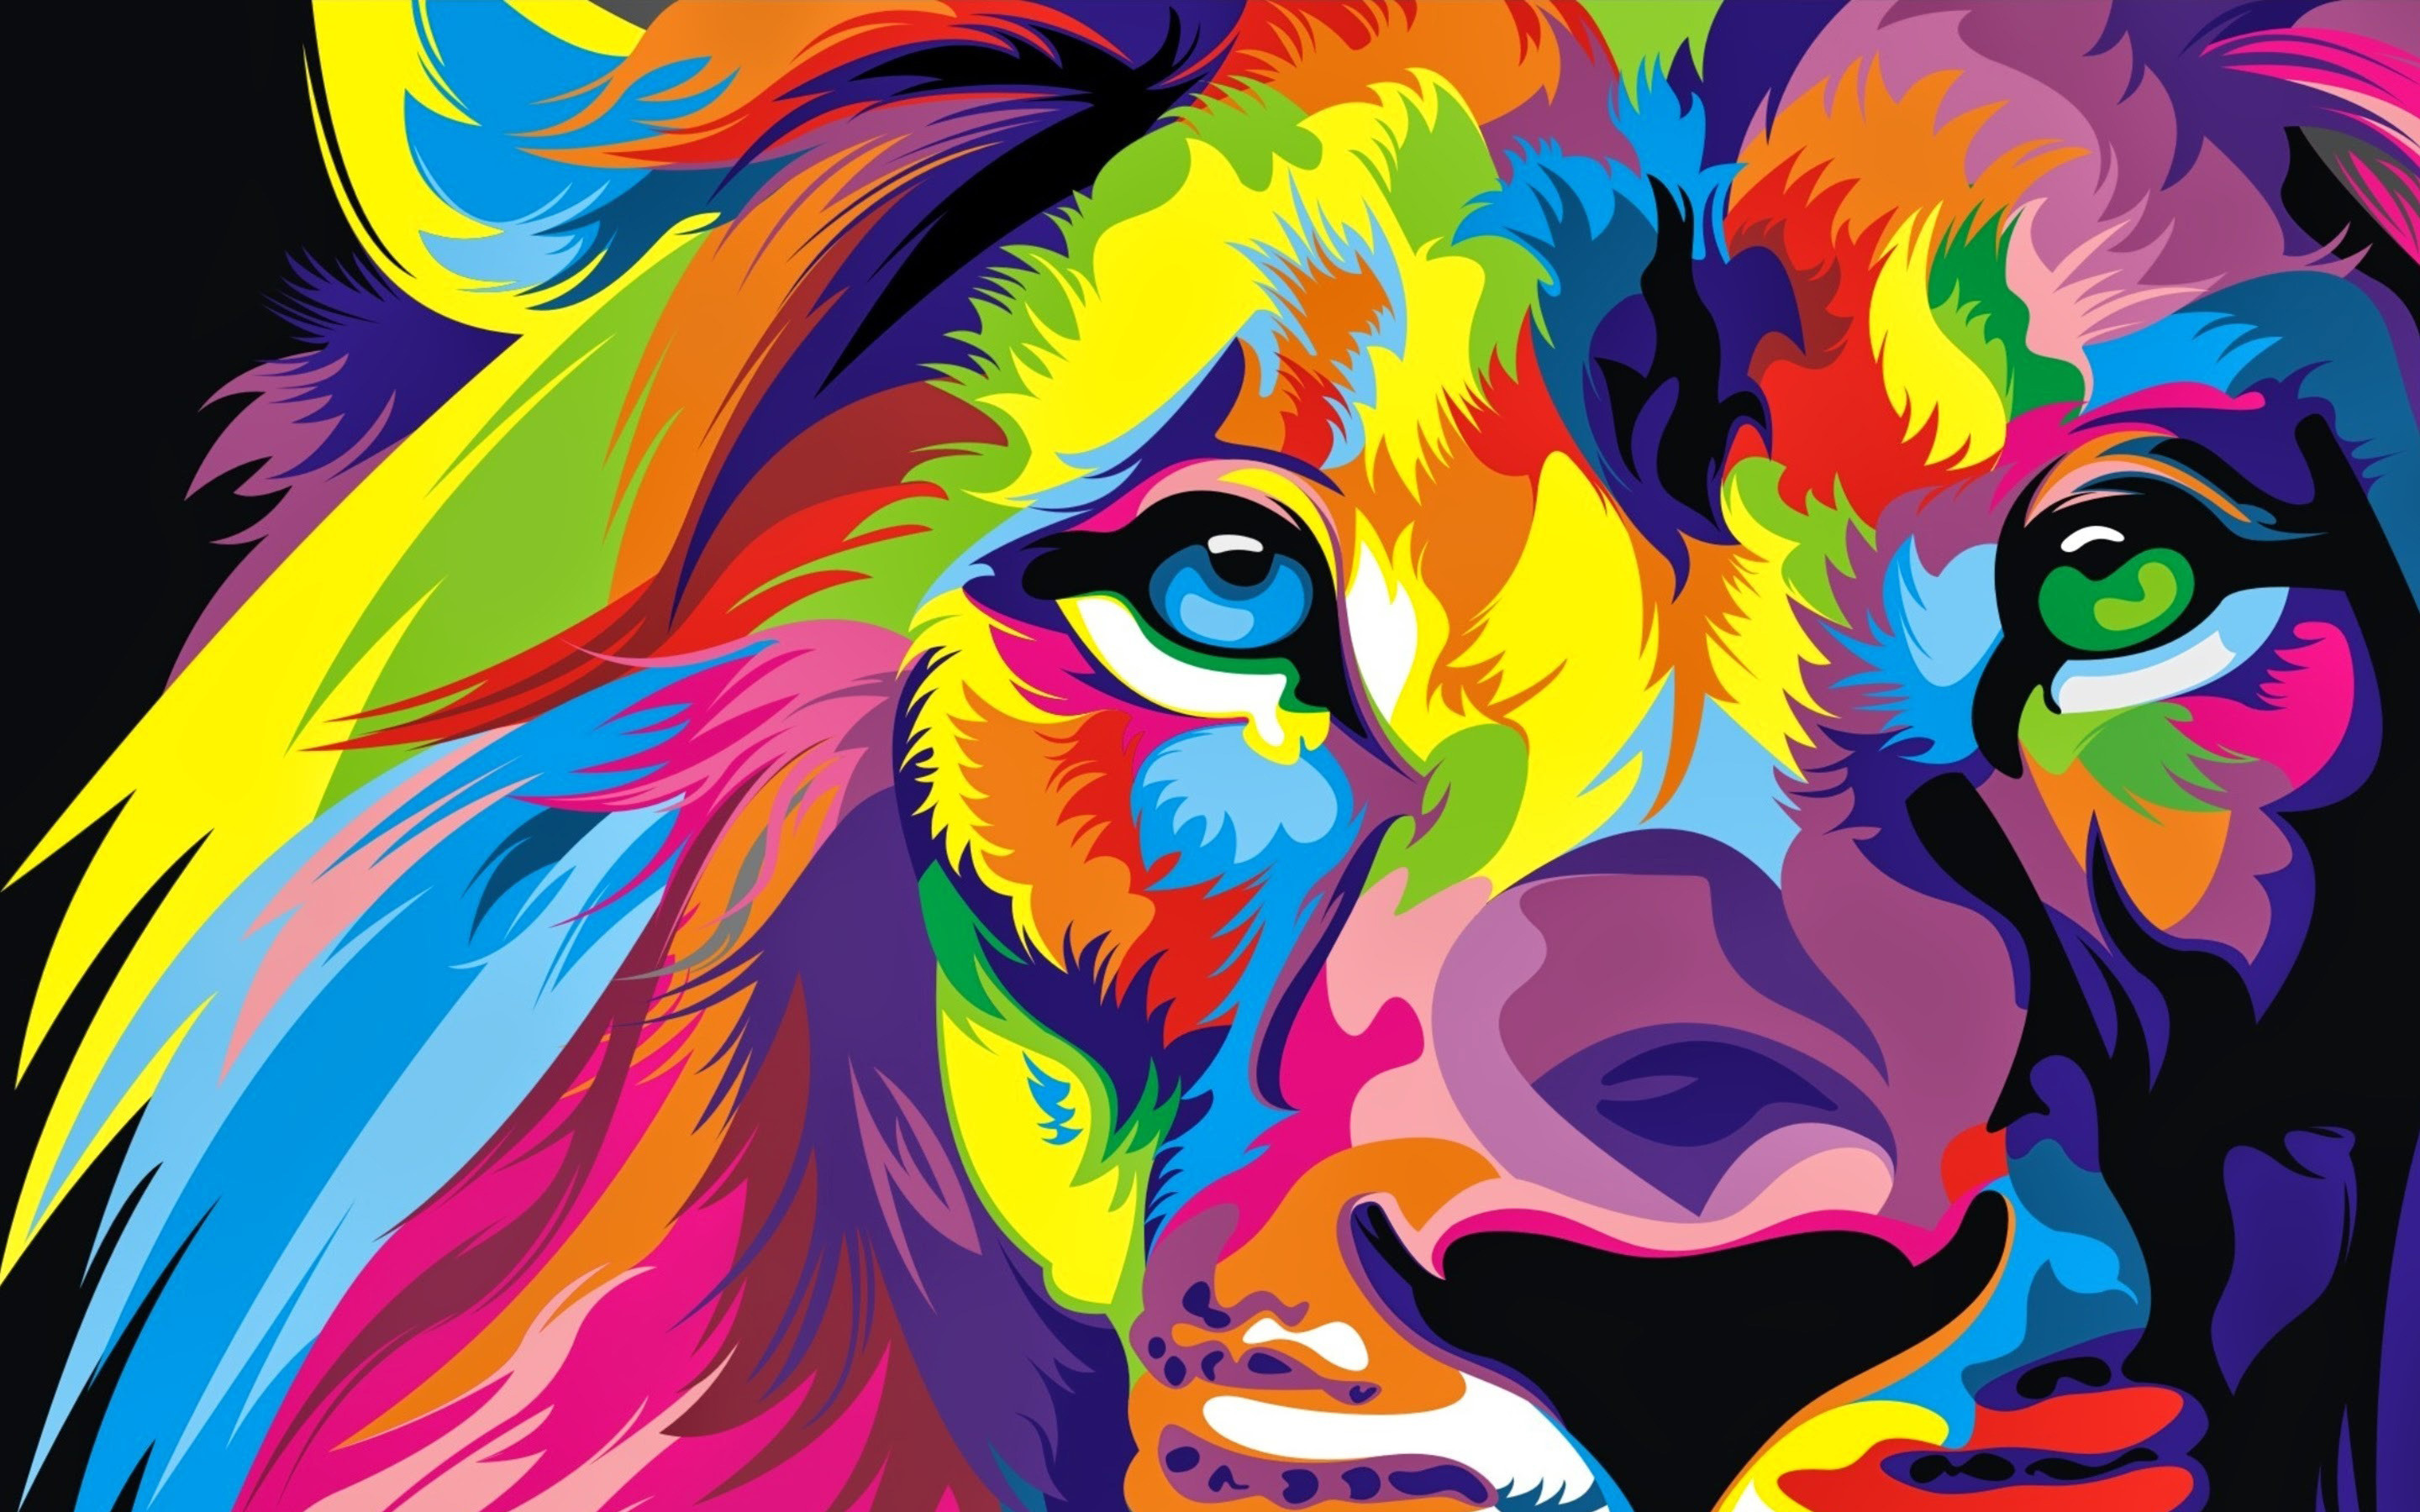 Colorful Hd Wallpaper 71 Images